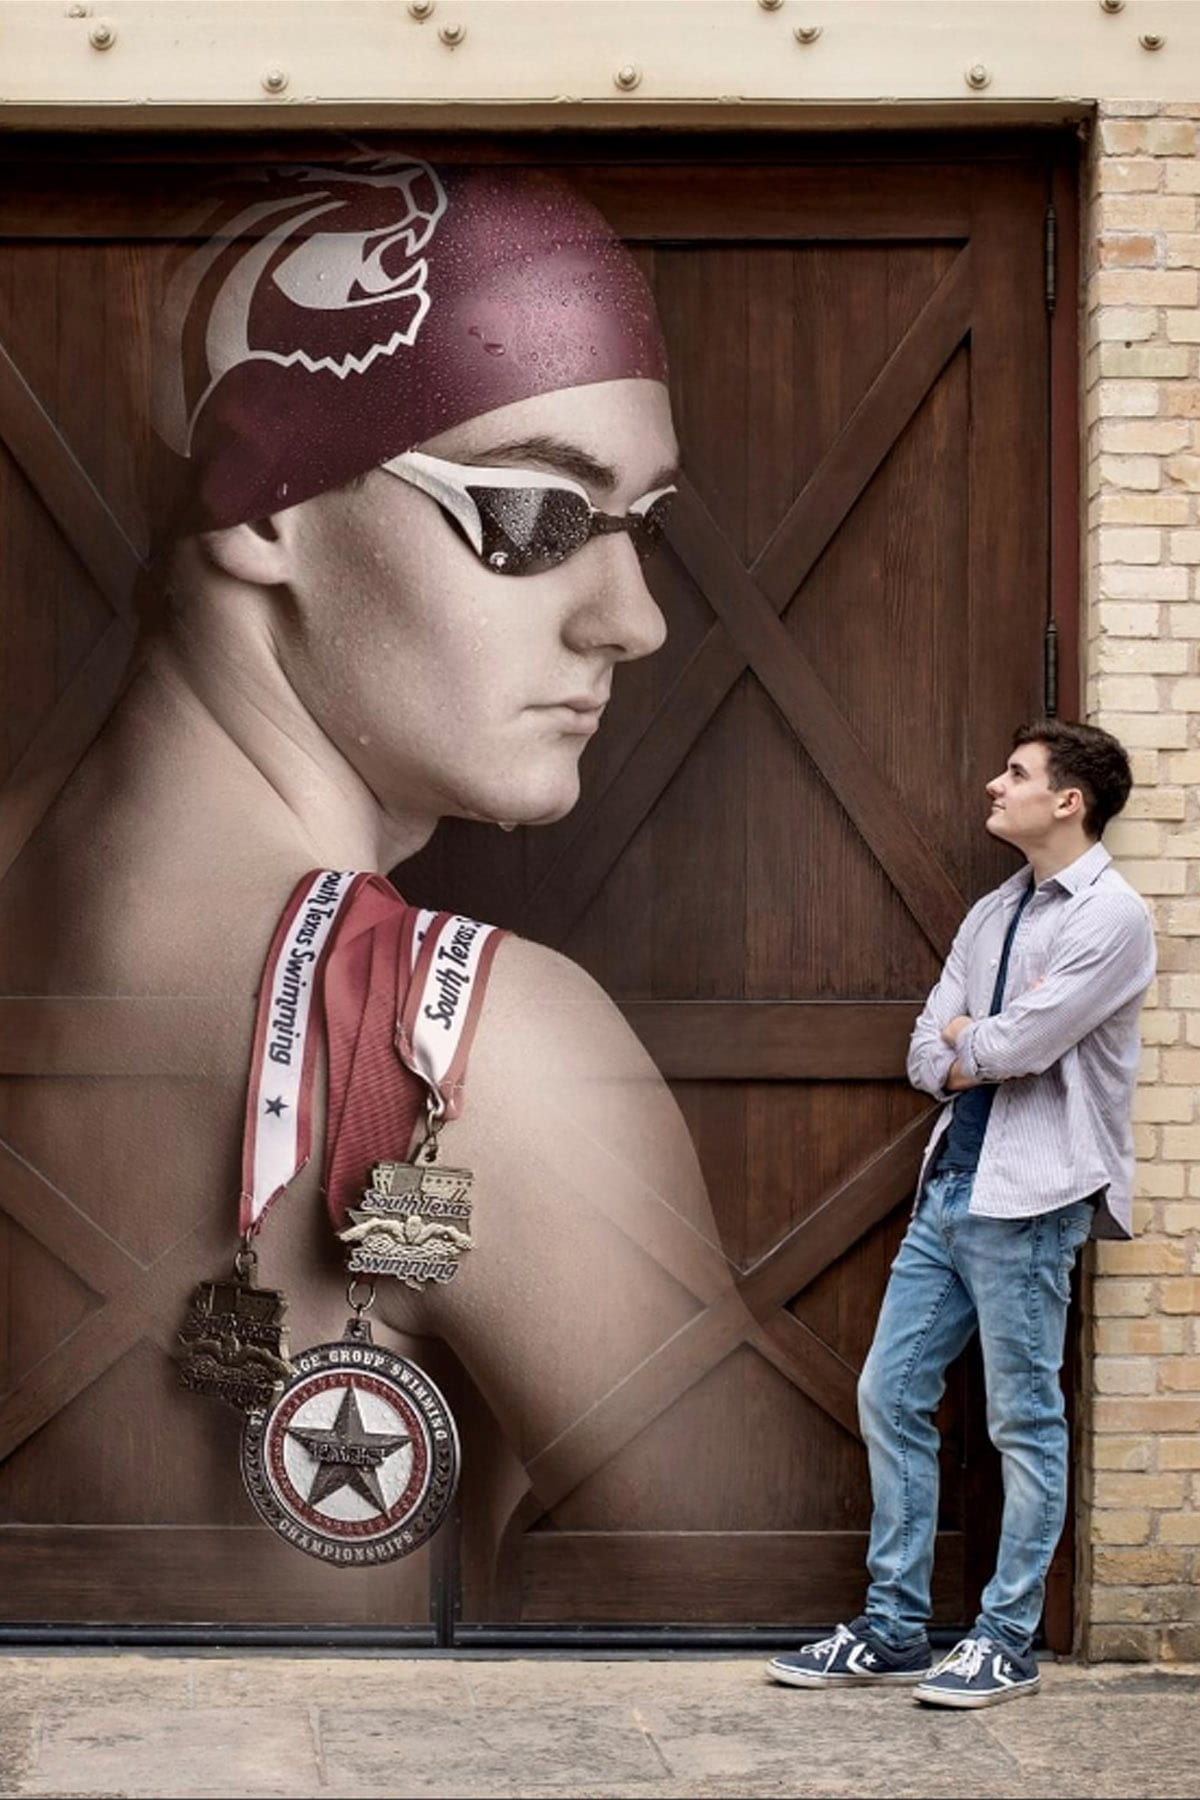 Swimming is a big part of our life. Christian is continuing his lifelong passion, swimming for Trinity University.